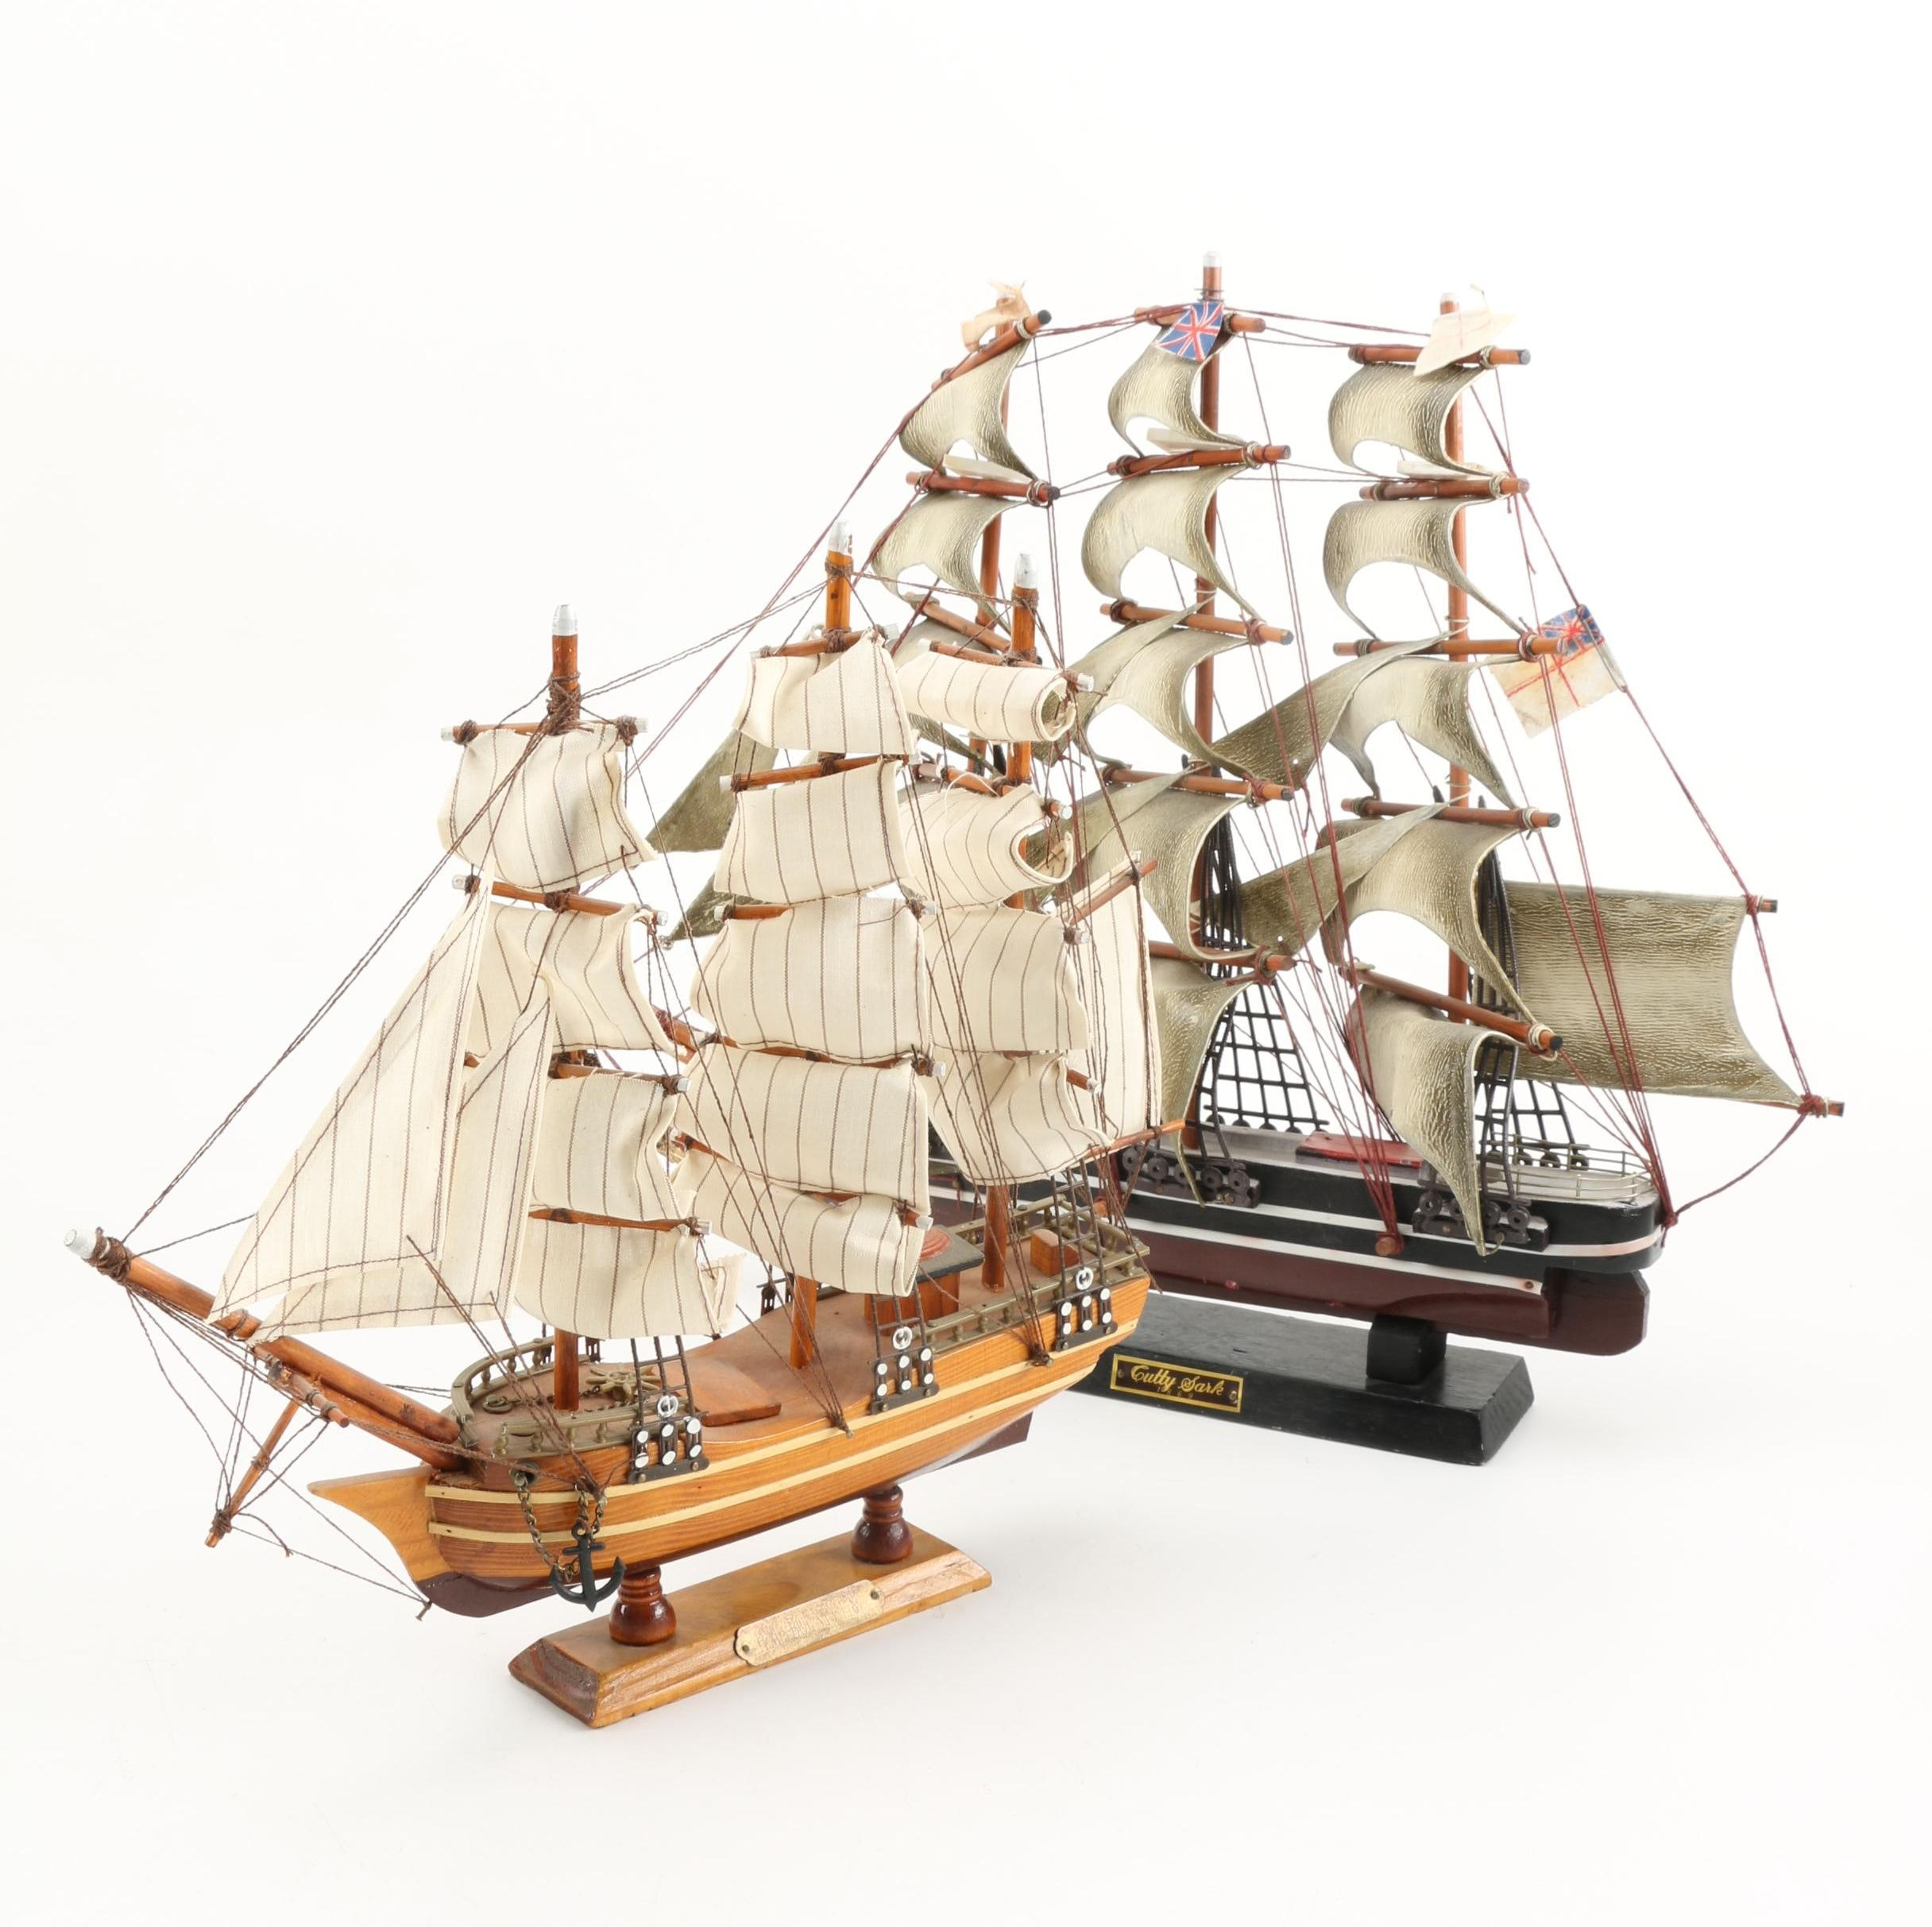 Cutty Sark and HMS Bounty Models